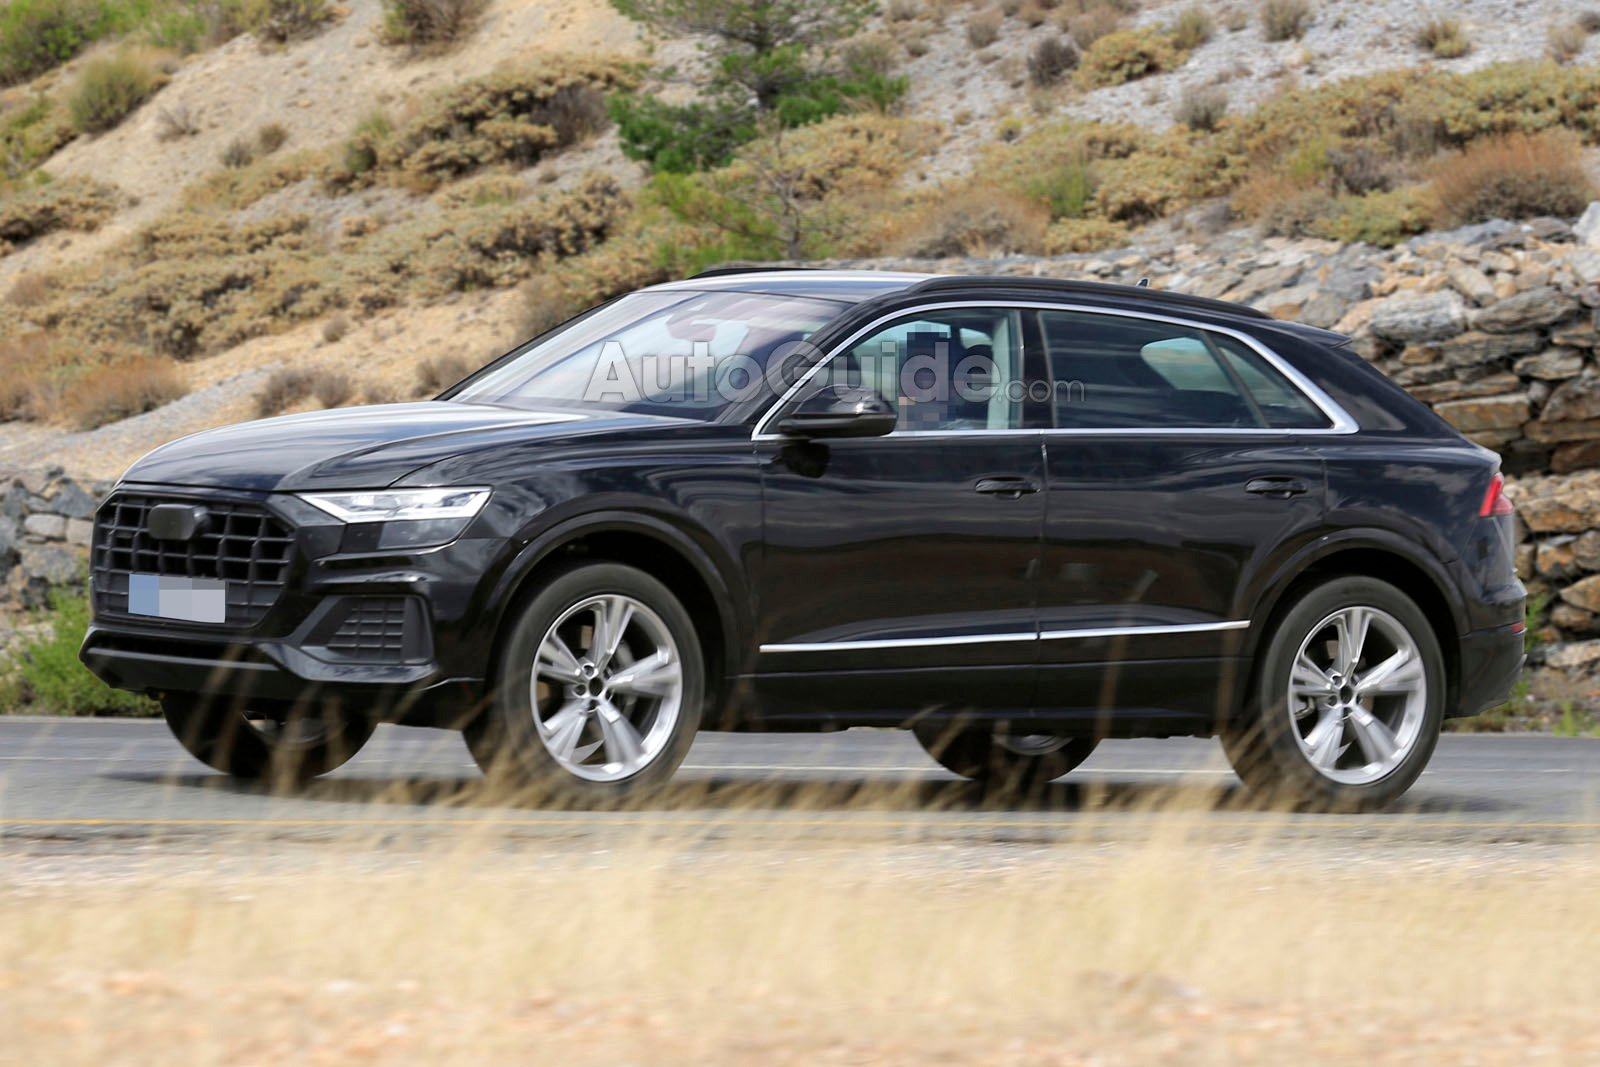 2019 Audi Q8 Spied Fully Exposed 187 Autoguide Com News